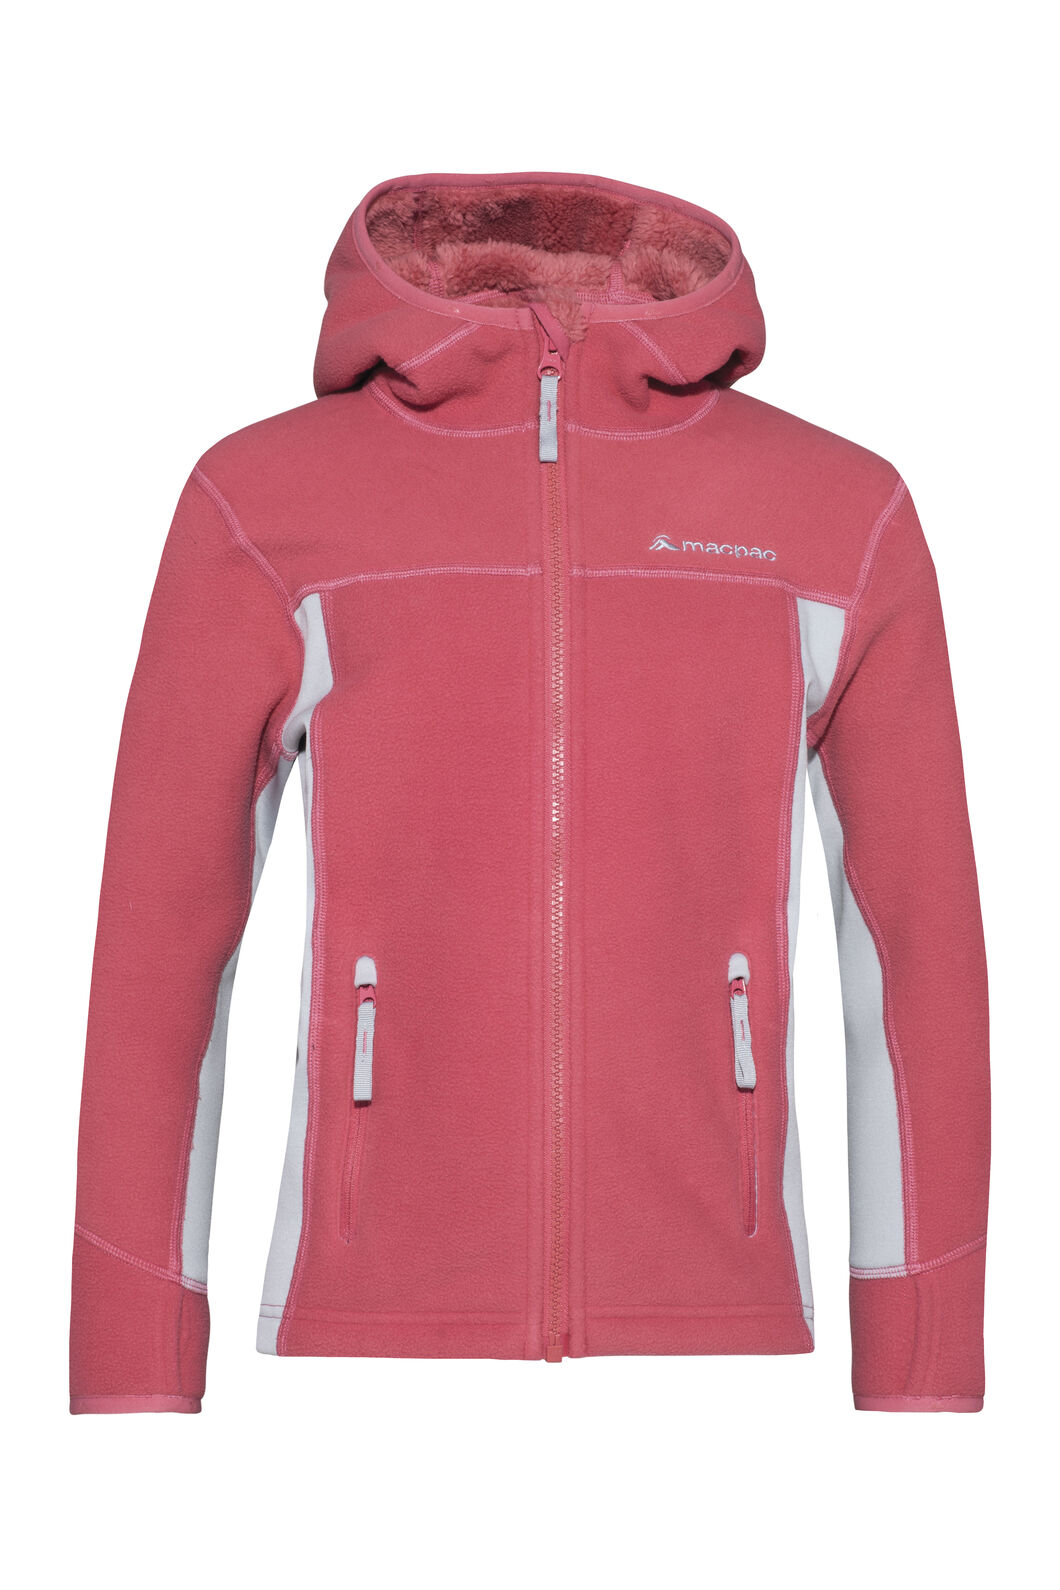 Macpac Mini Mountain Hooded Jacket — Kids', Slate Rose/High Rise, hi-res